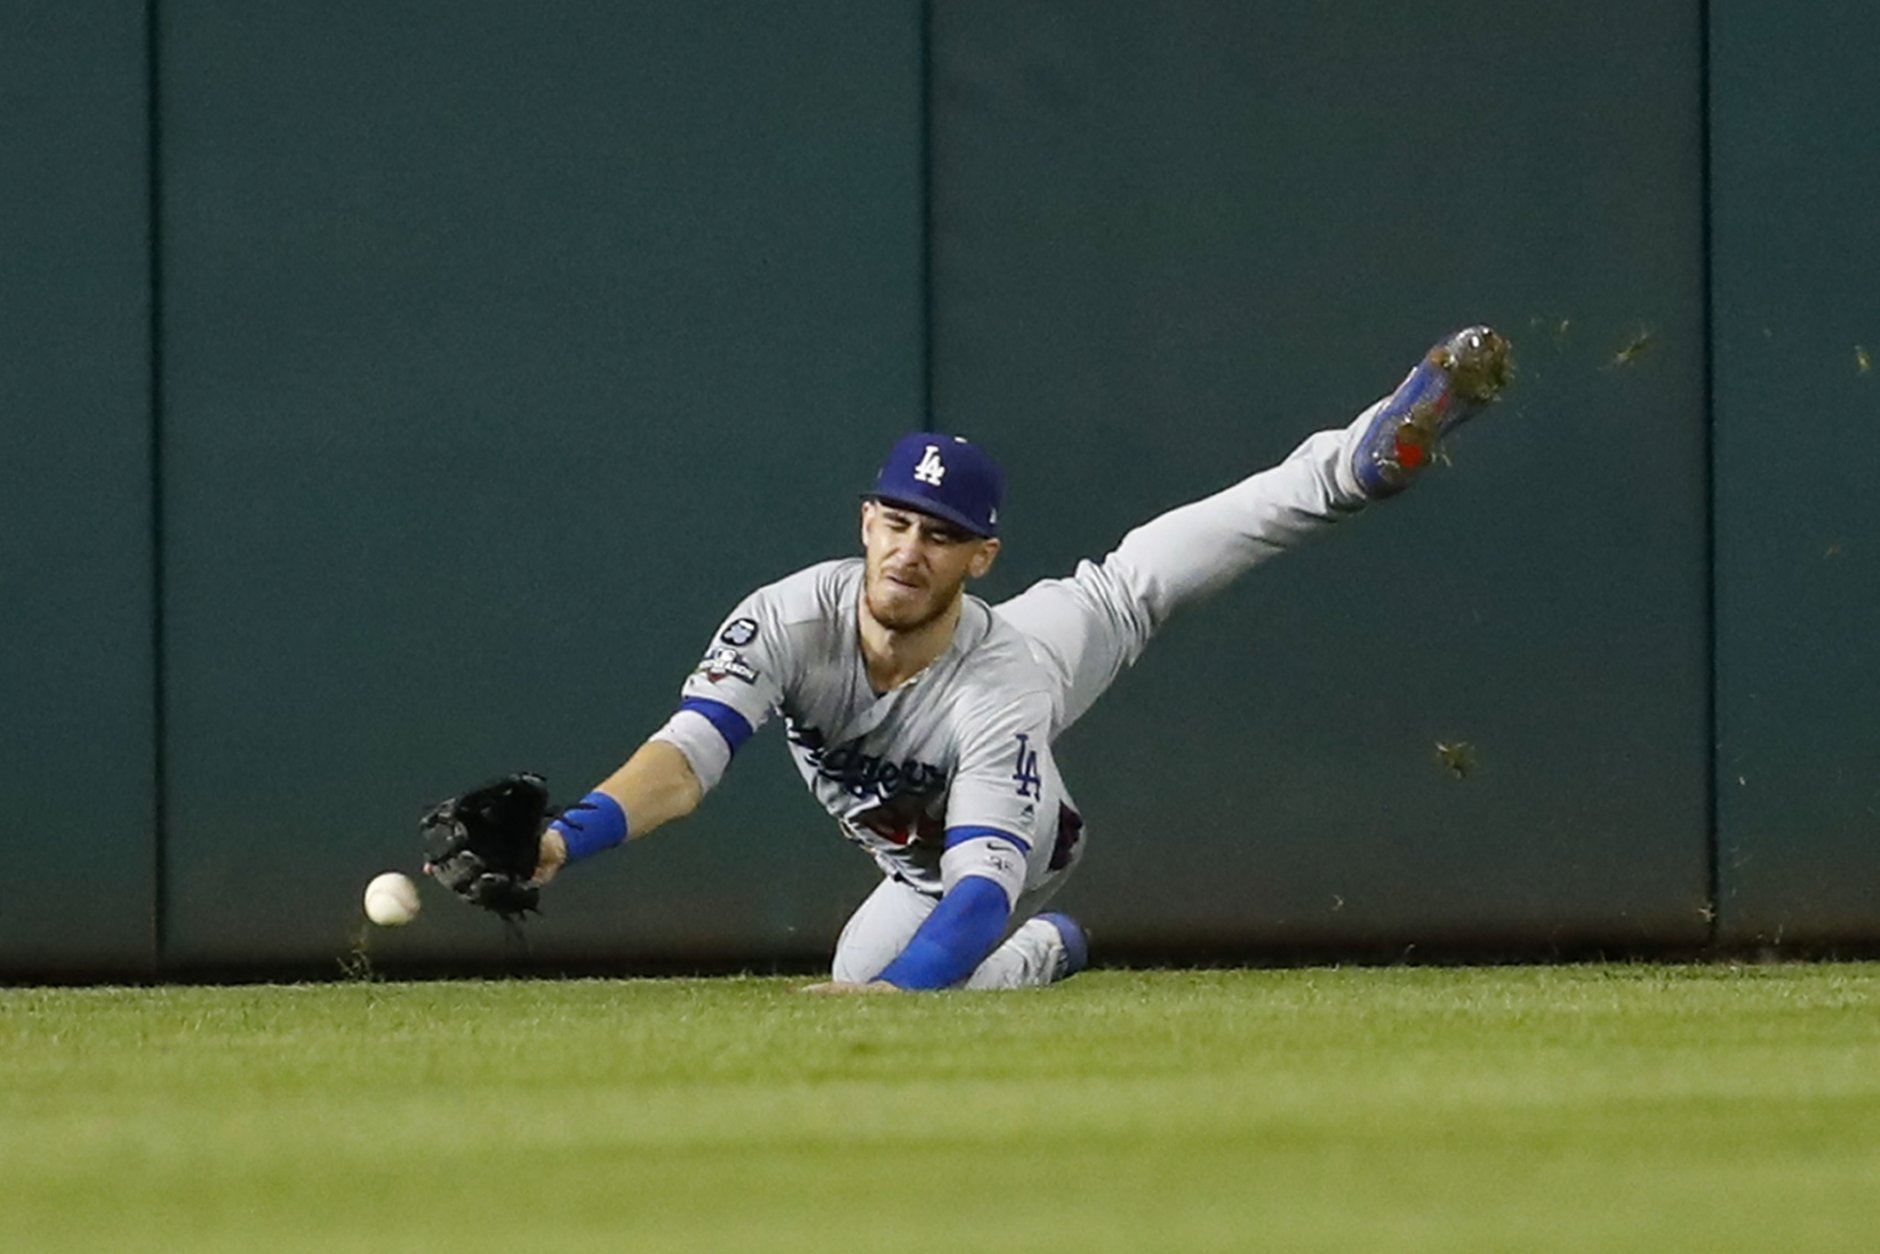 Los Angeles Dodgers center fielder Cody Bellinger (35) misses a ball hit by Washington Nationals shortstop Trea Turner (7) in the sixth inning in Game 4 of a baseball National League Division Series, Monday, Oct. 7, 2019, in Washington. (AP Photo/Alex Brandon)